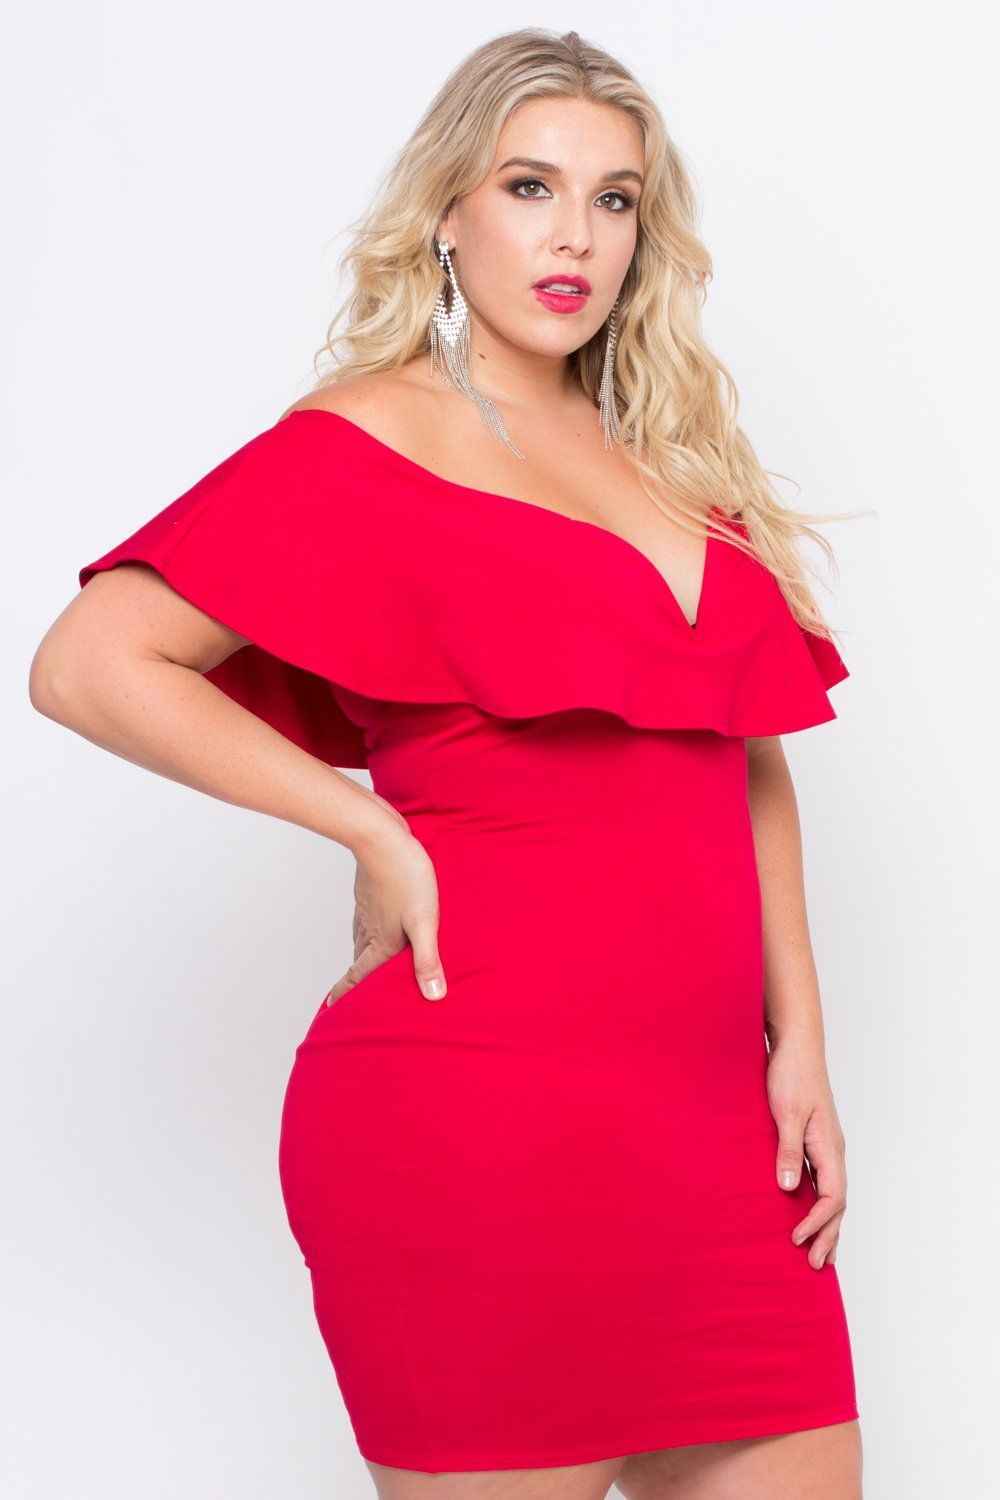 Plus Size Frill Bodycon Dress Red In 2021 Red Bodycon Dress Fashion Design Dress Bodycon Dress [ 1500 x 1000 Pixel ]